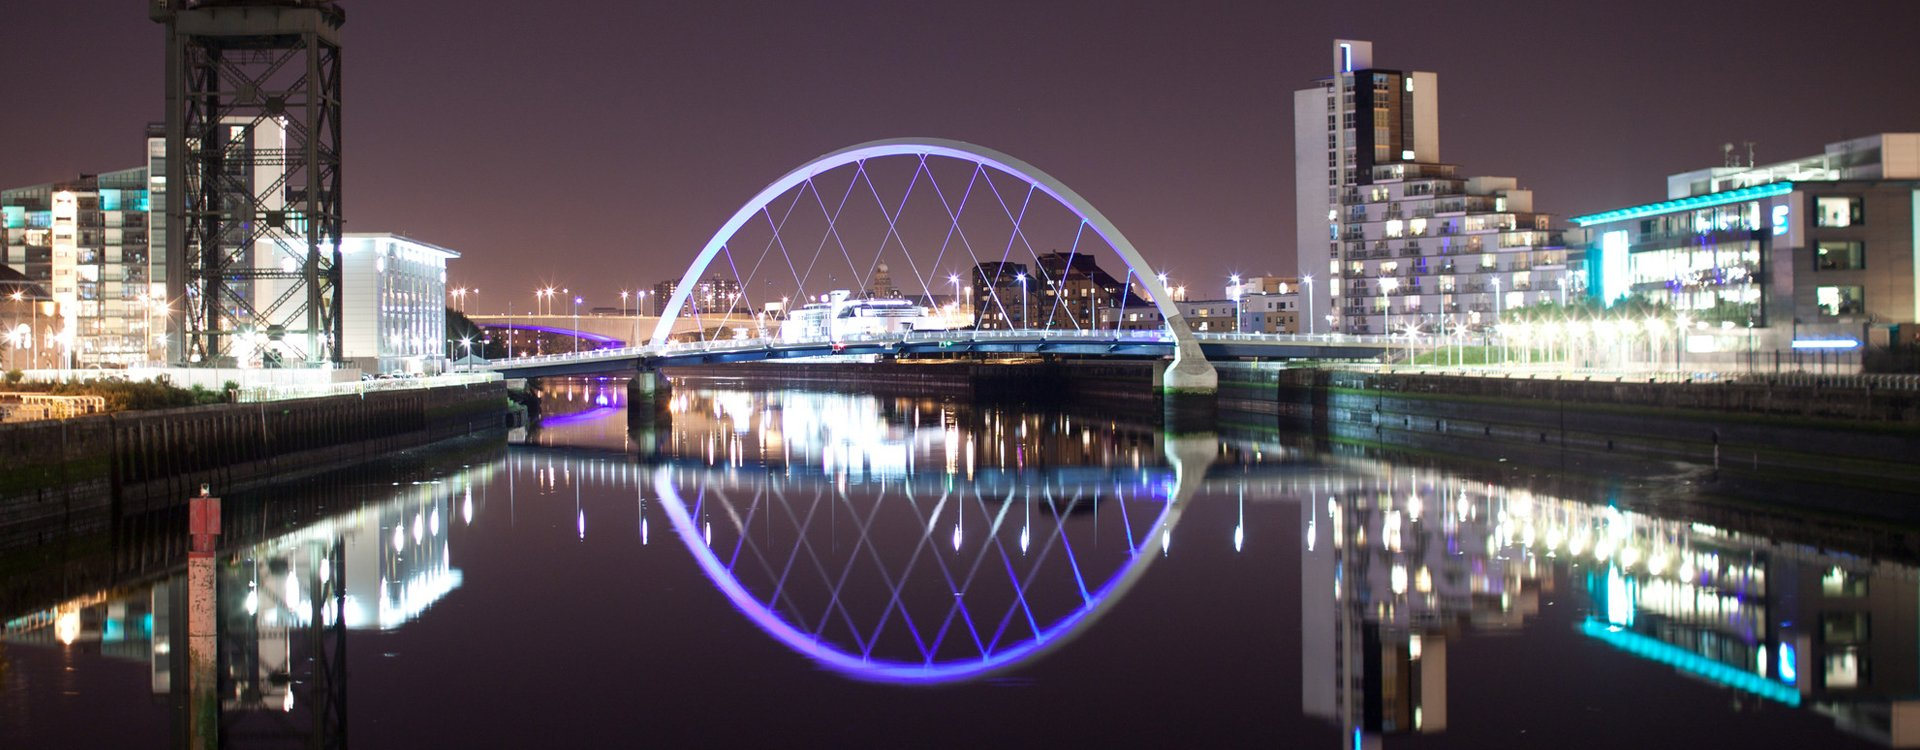 Electrical services in Glasgow and Central Scotland